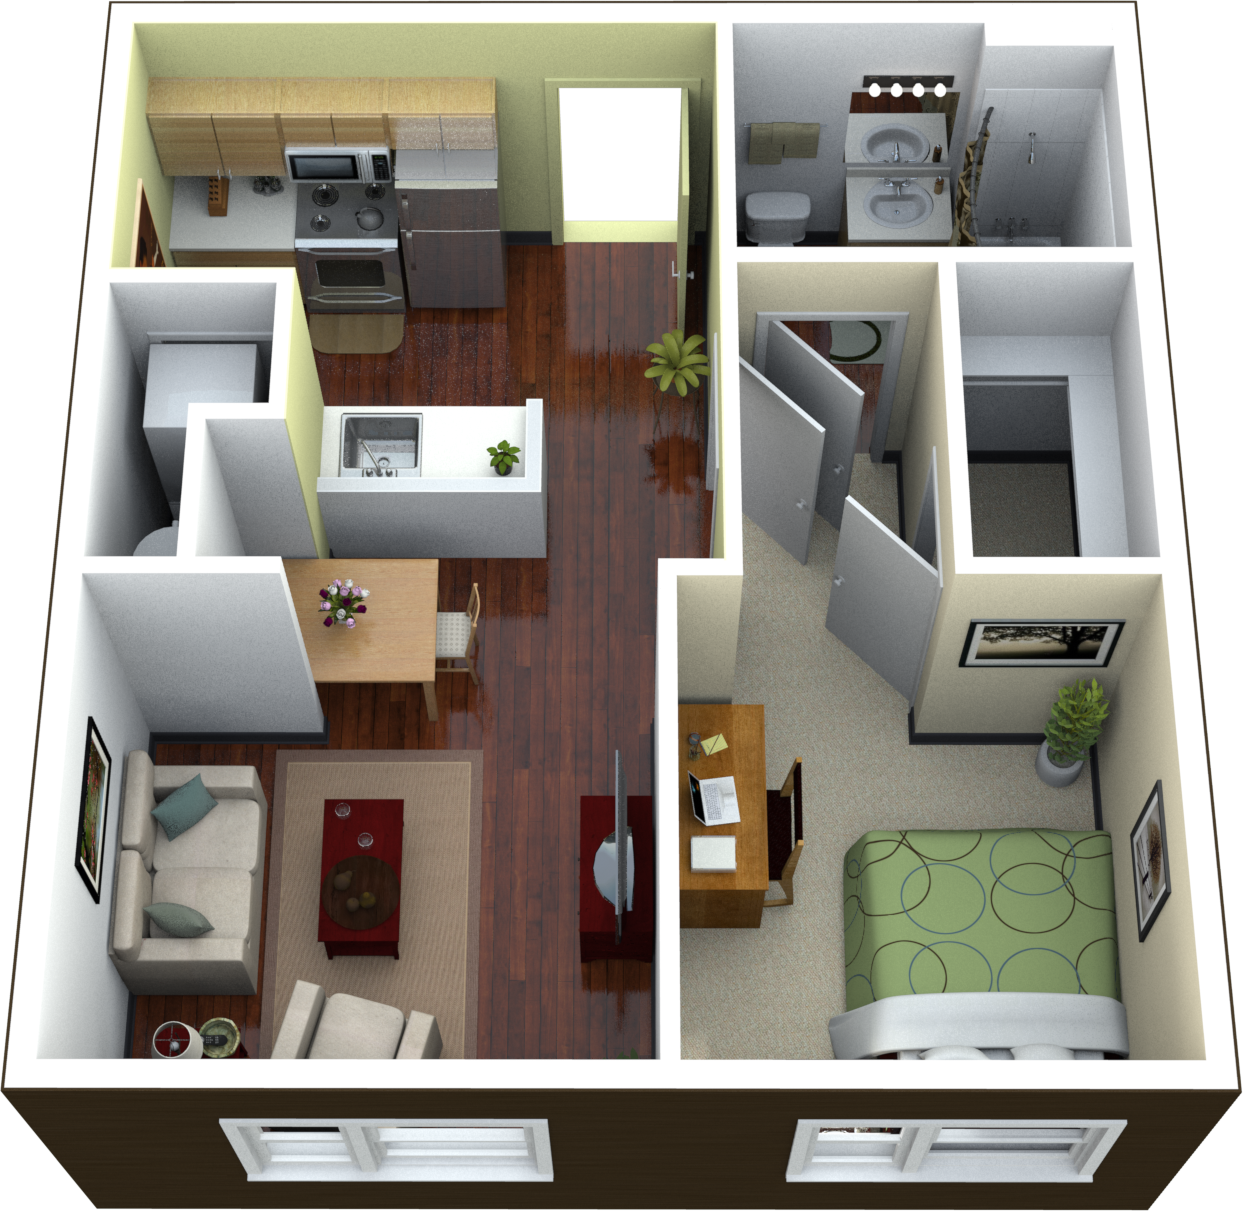 1 bedroom floor plans for apartment. 1 bedroom floor plans for apartment   design ideas 2017 2018